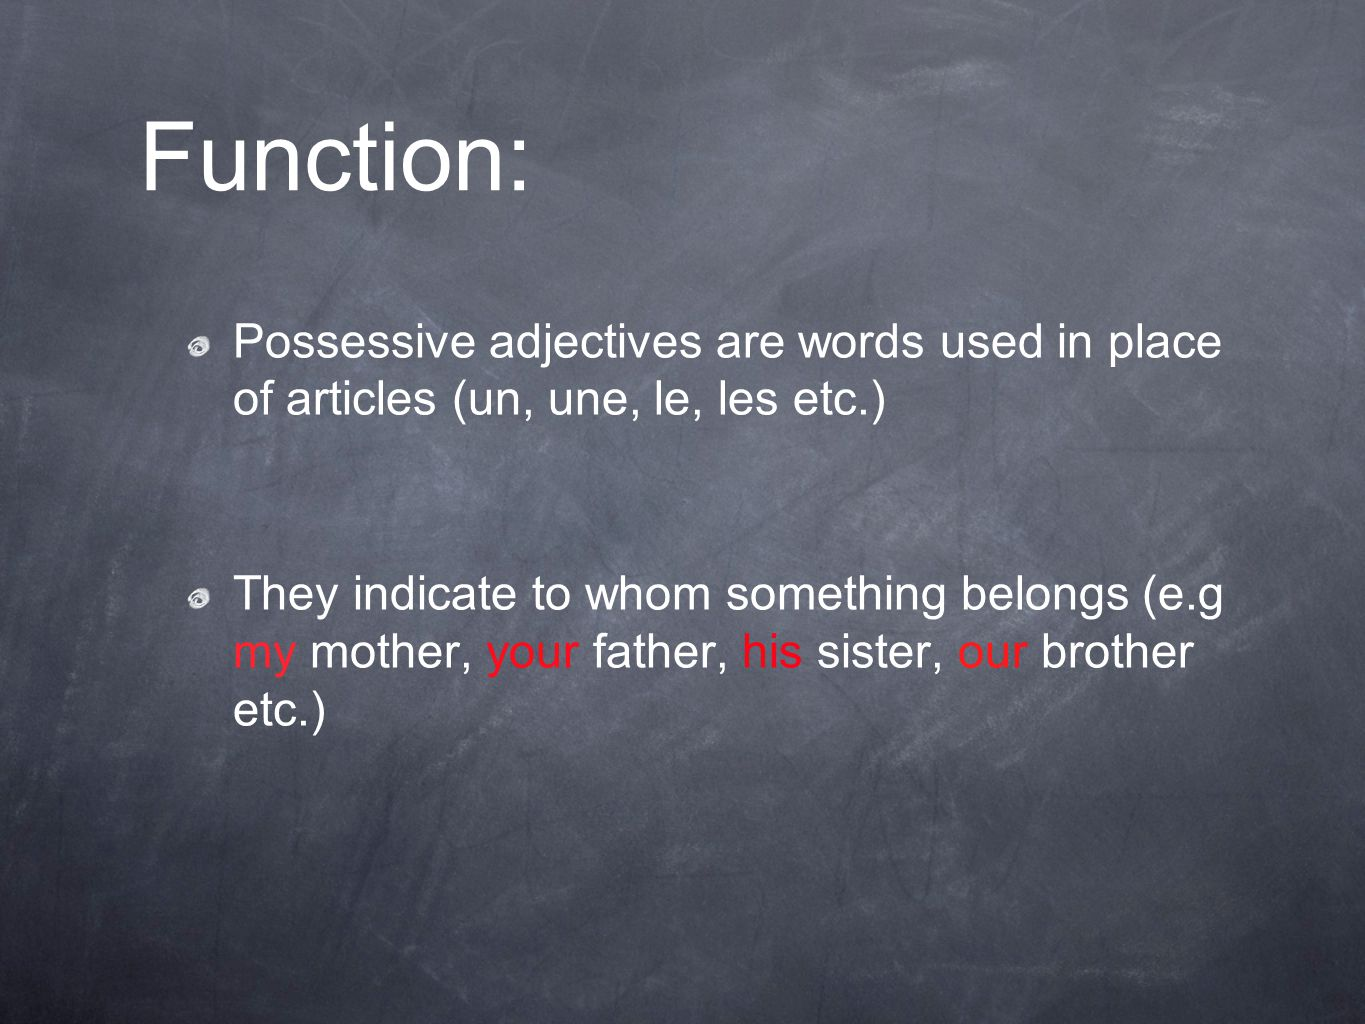 Function: Possessive adjectives are words used in place of articles (un, une, le, les etc.)